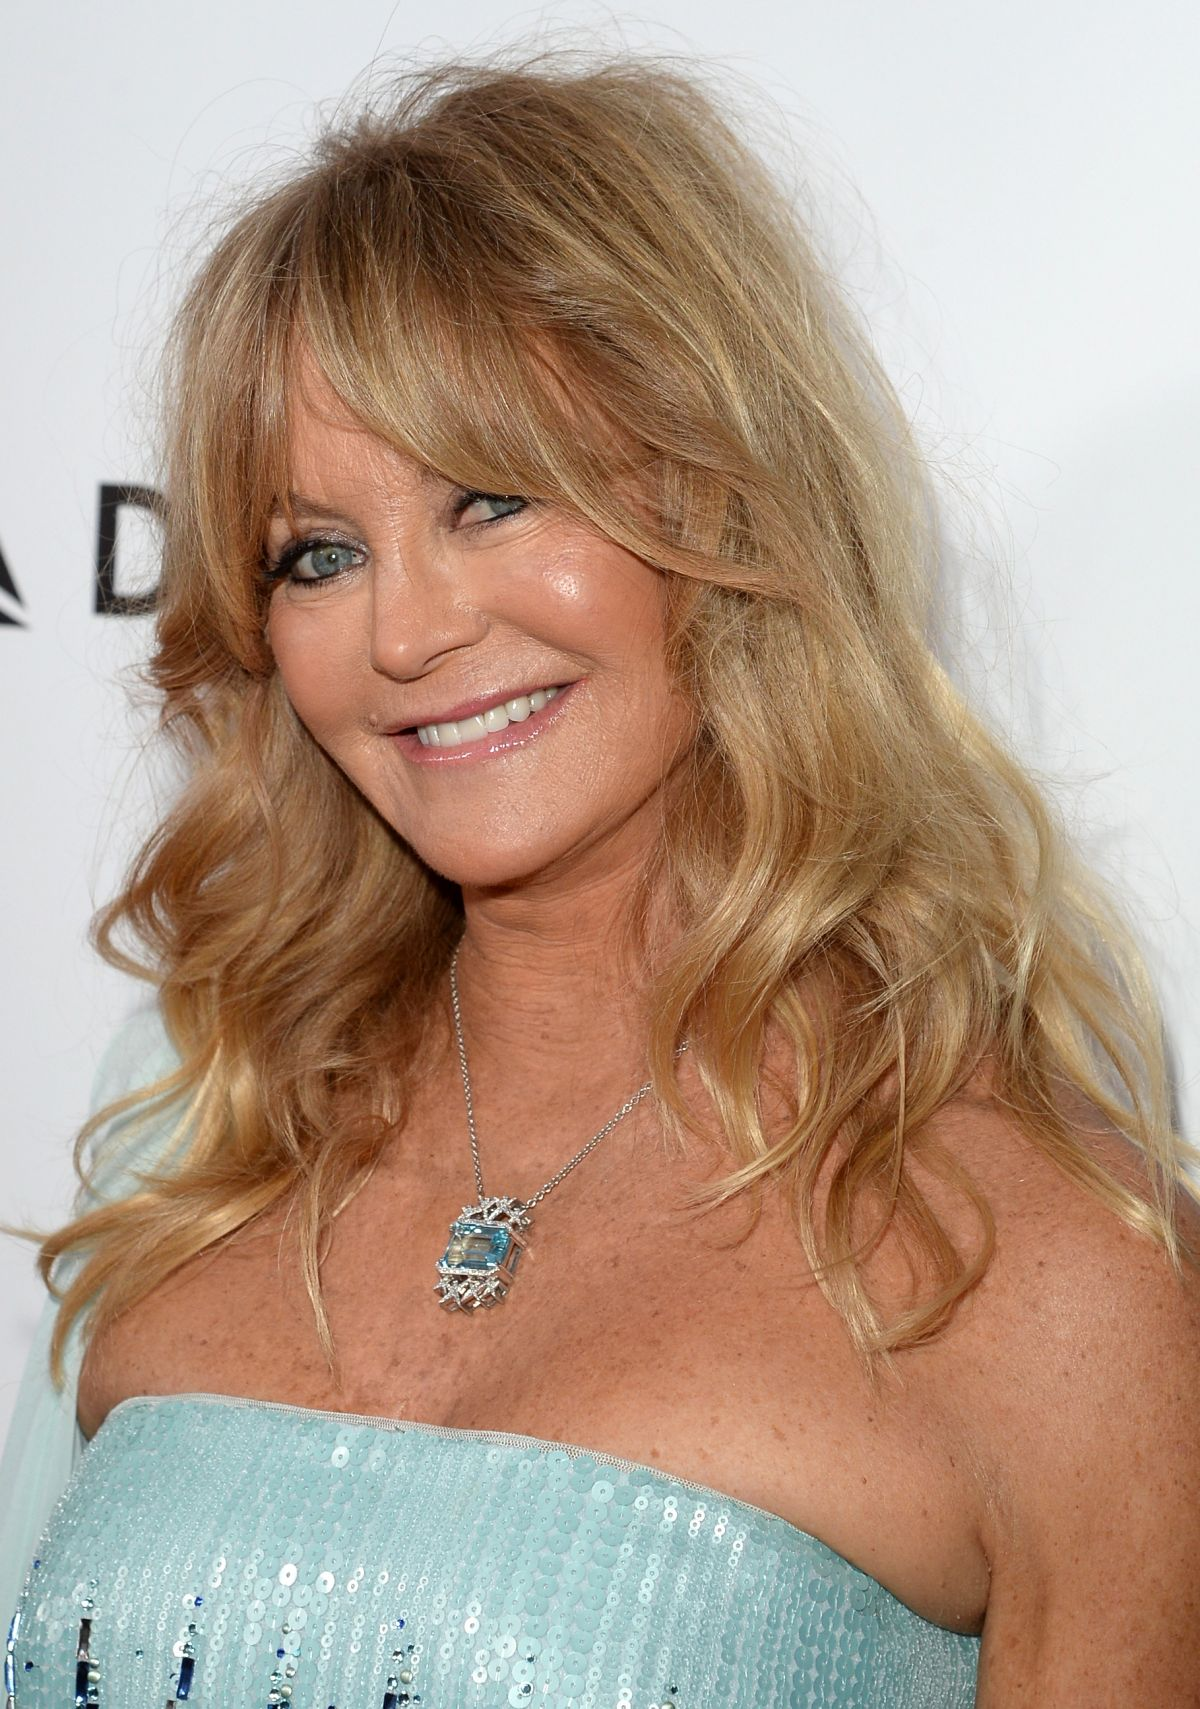 Mac Makeup Wallpaper Iphone Goldie Hawn Wallpapers High Quality Download Free